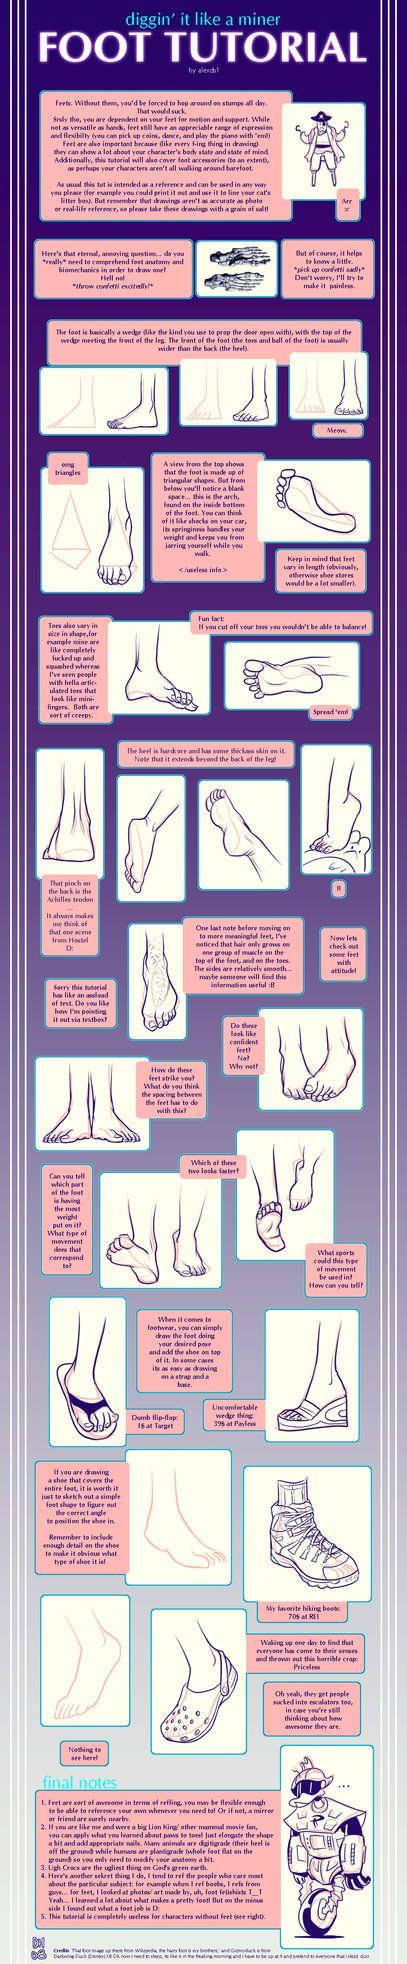 Foot_tutorial_by_alexds1